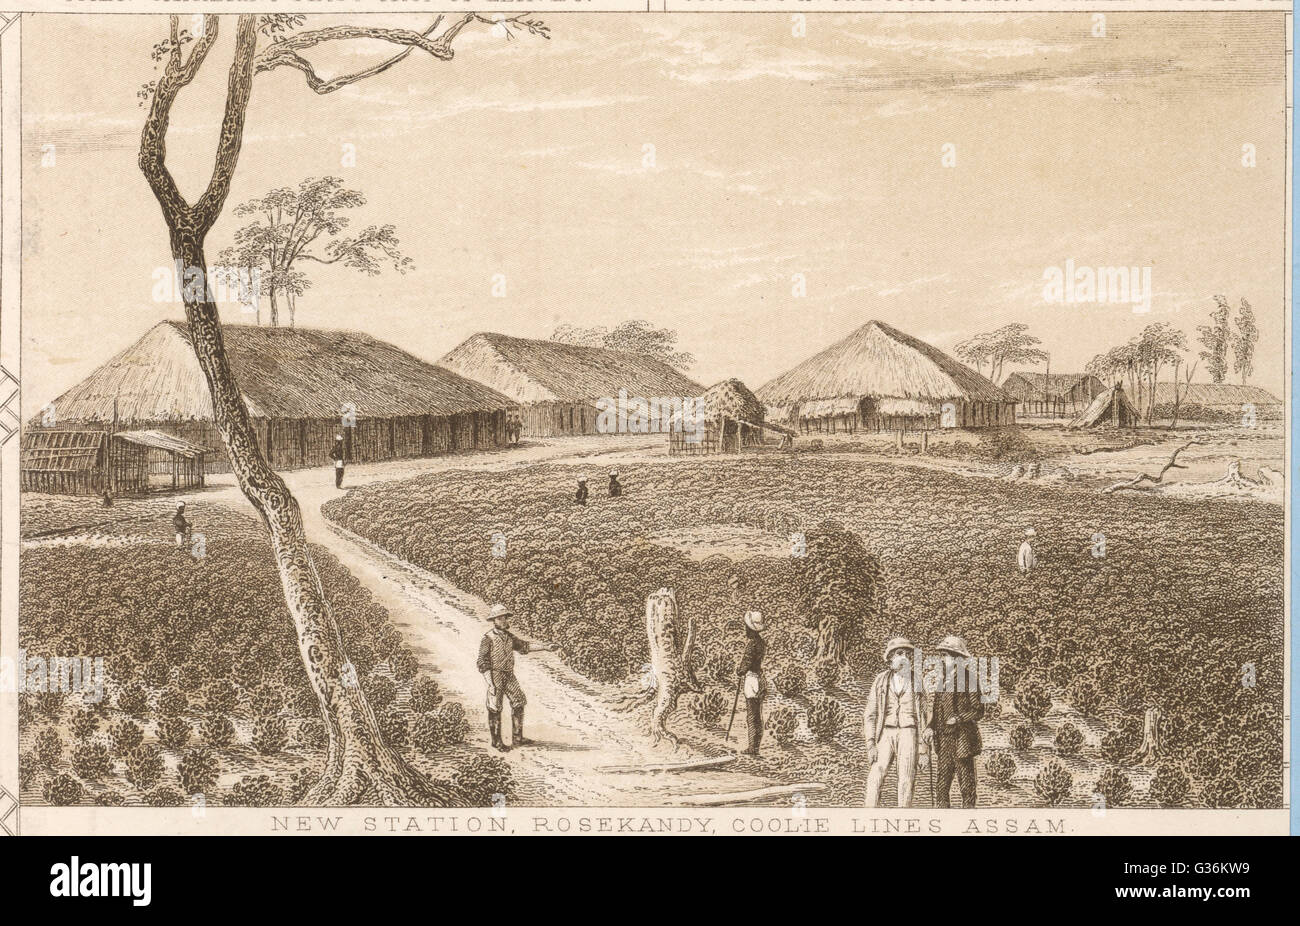 Tea cultivation in Assam : plantation at  Rosekandy         Date: circa 1840 - Stock Image